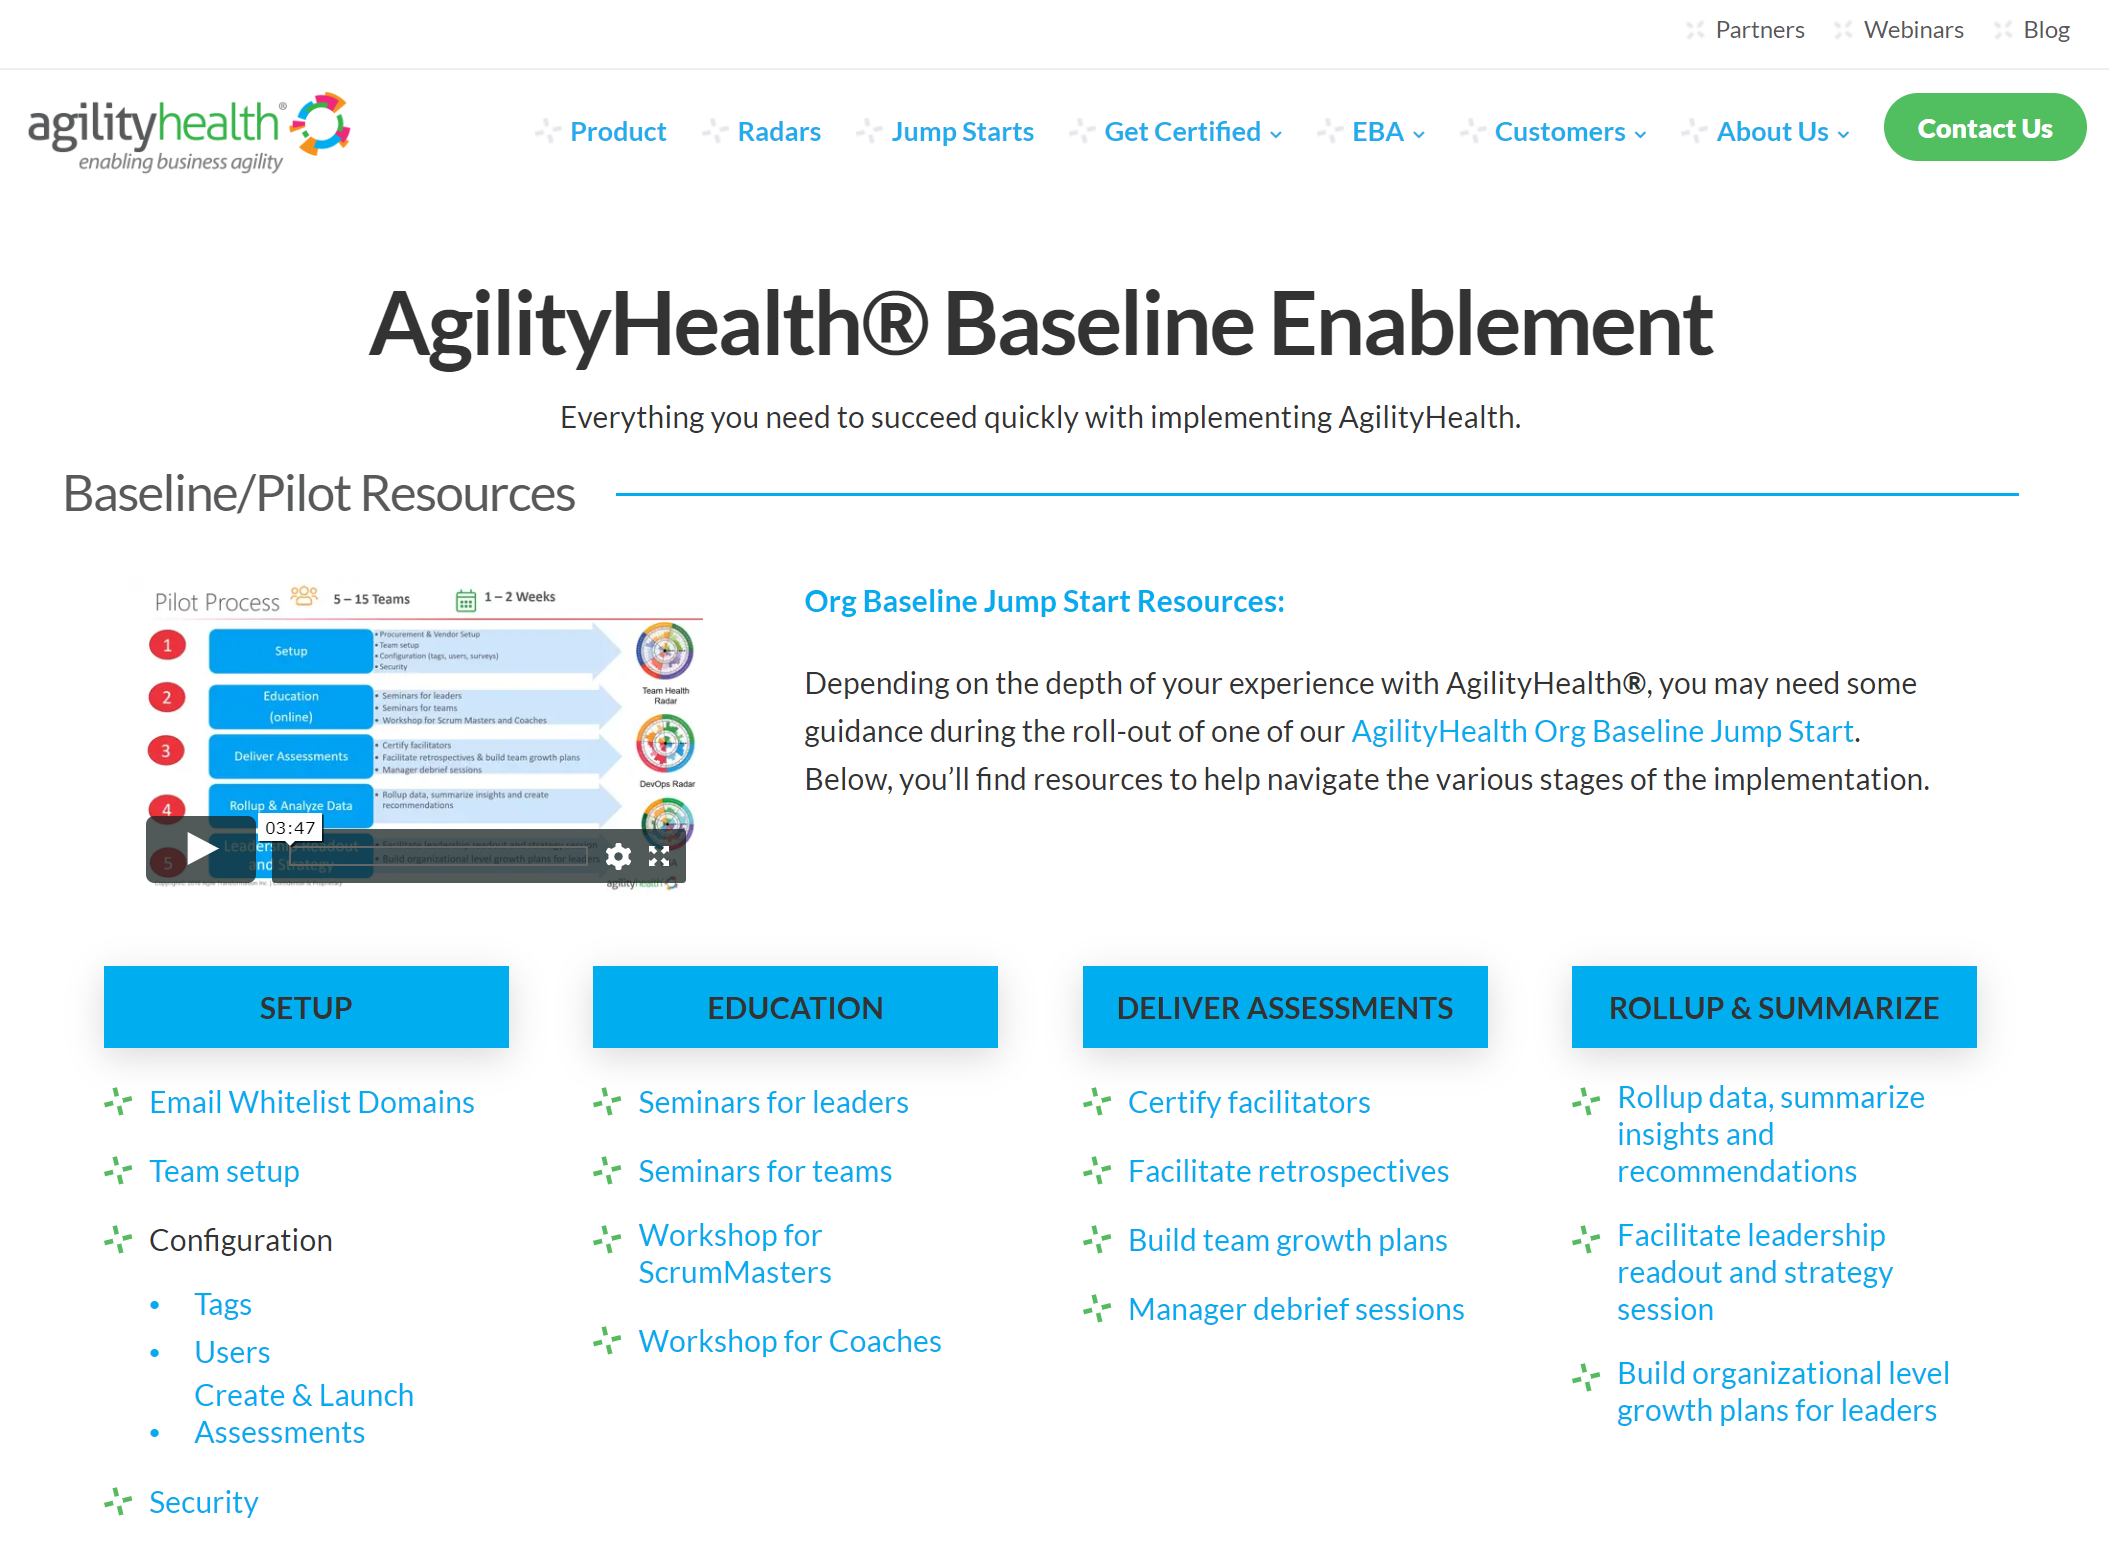 agilityhealth_enablement.PNG